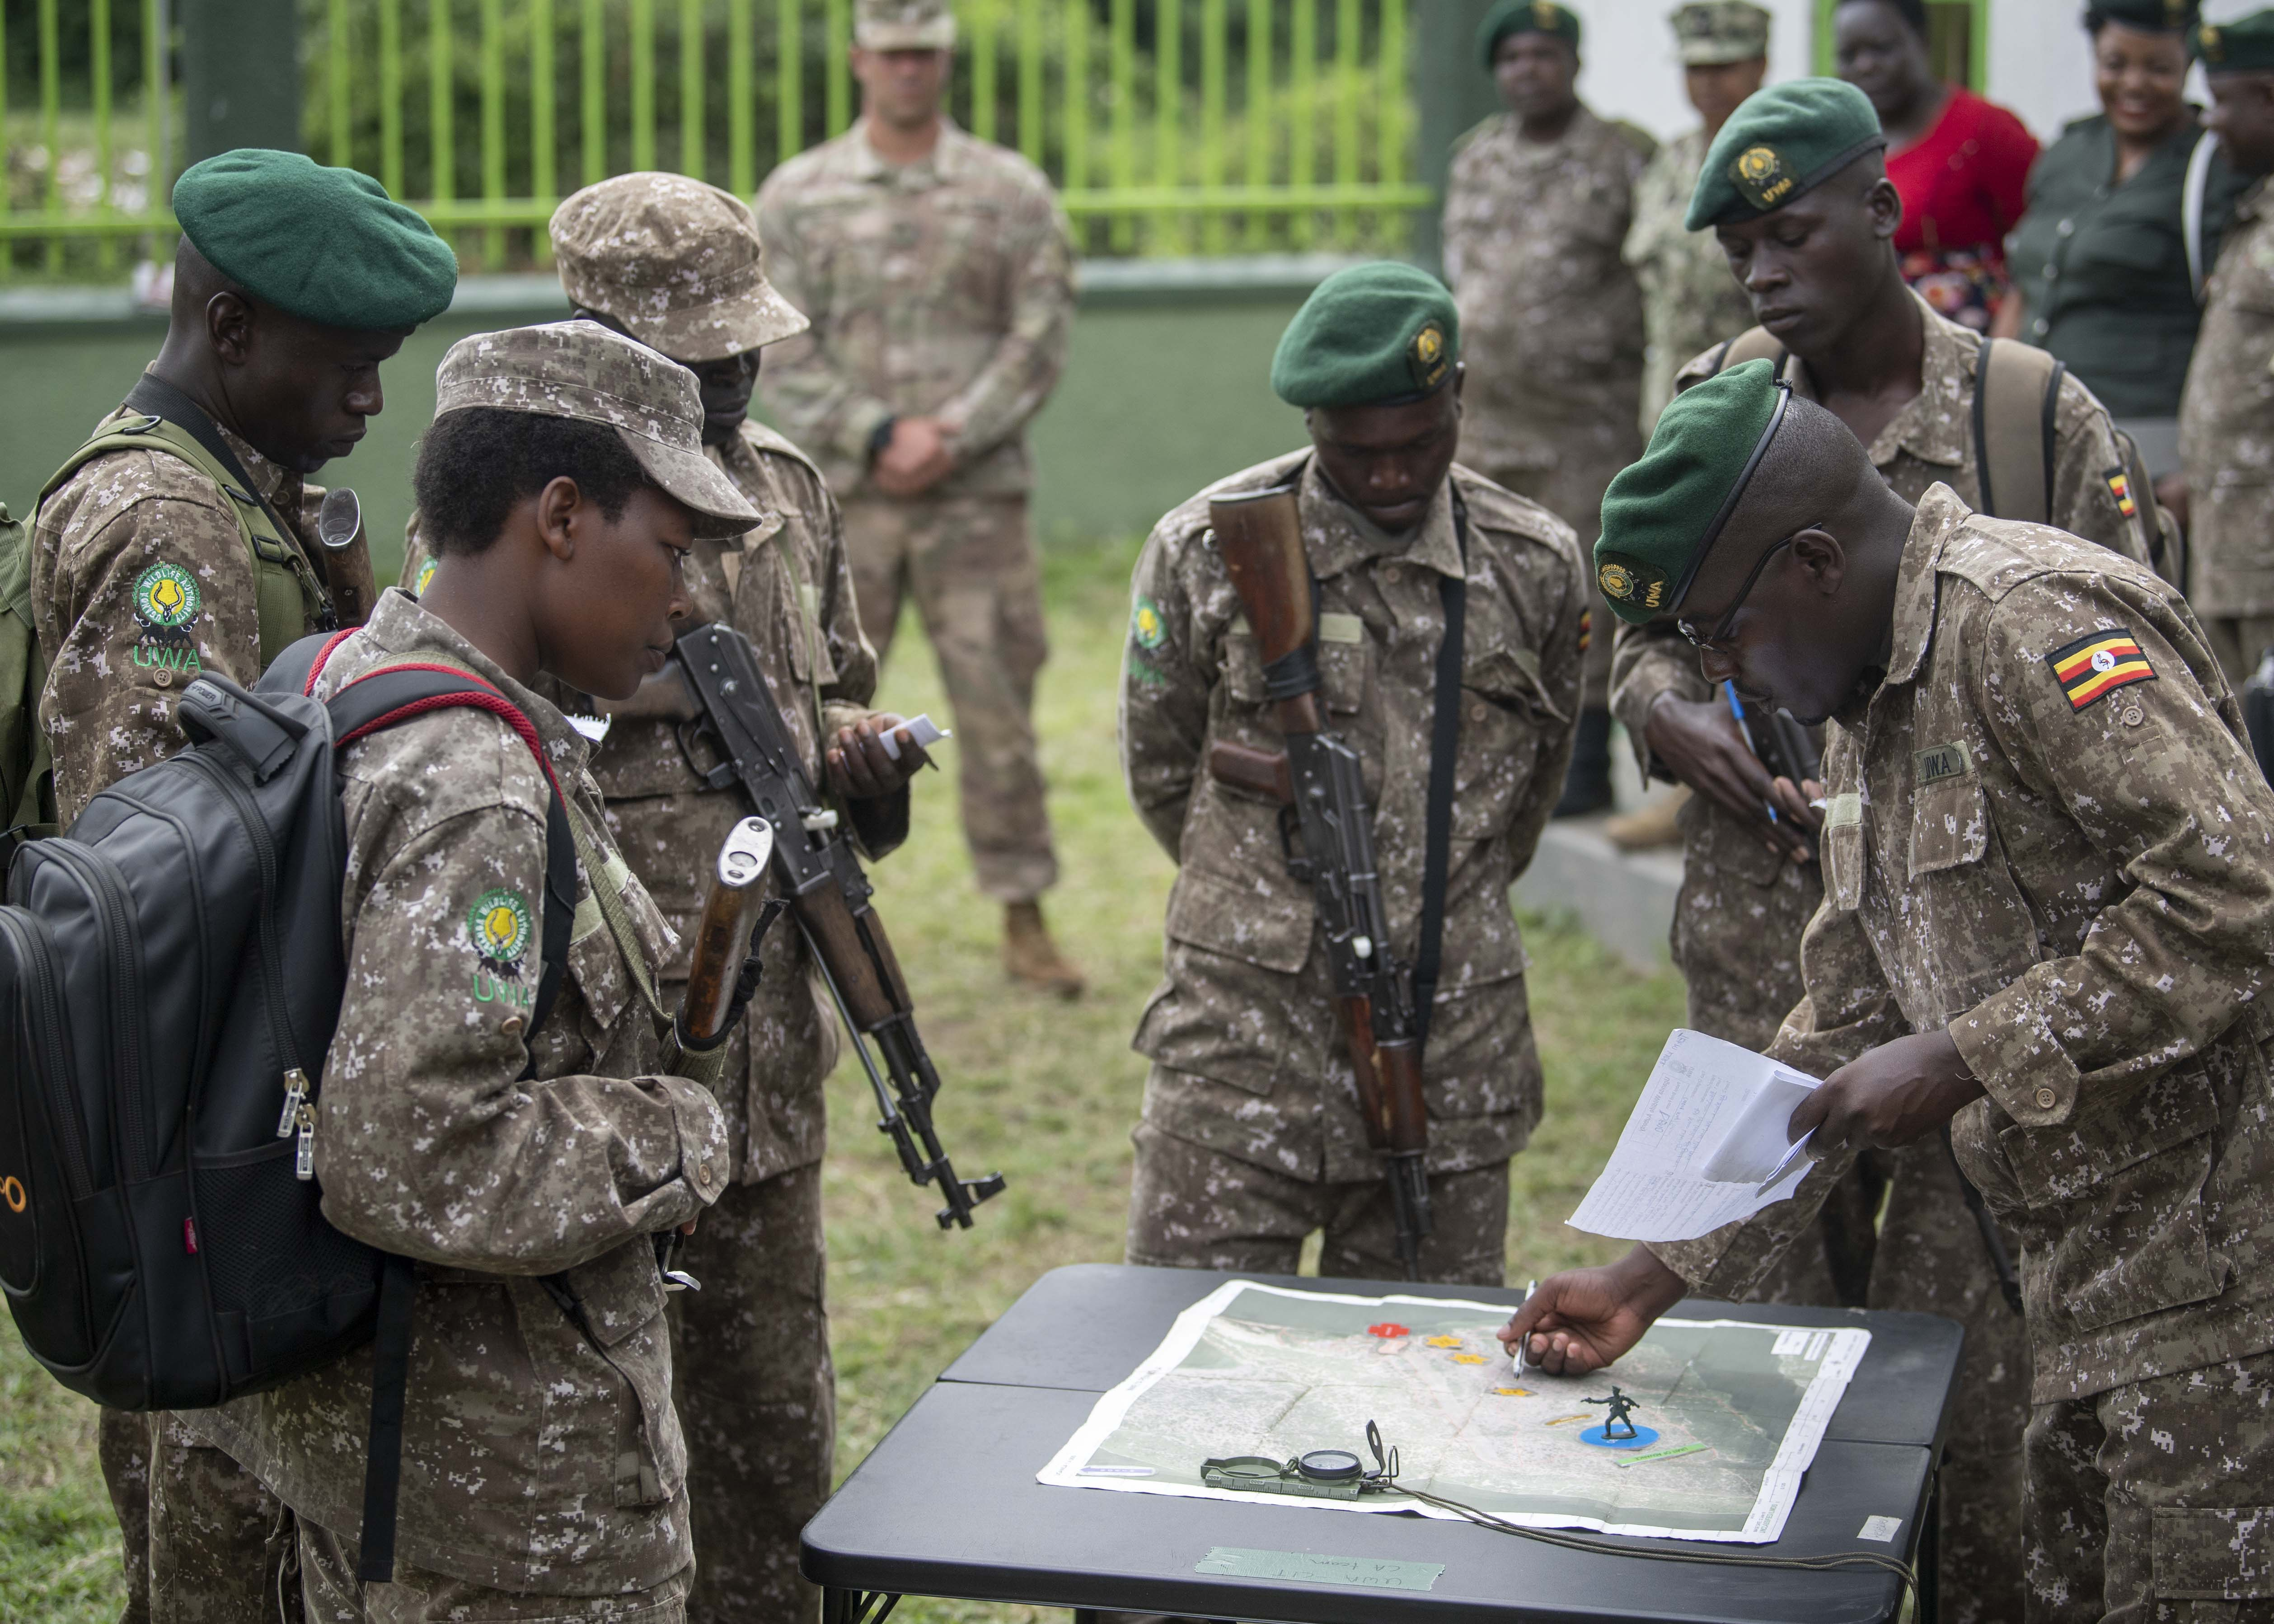 Uganda Wildlife Authority (UWA) Rangers discuss land navigation during a Counter Illicit Trafficking Junior Leadership Course graduation demonstration at Queen Elizabeth Park, Uganda, Oct. 10, 2019. Twenty-five UWA Rangers graduated the course. (U.S. Air Force photo by Staff Sgt. J.D. Strong II)